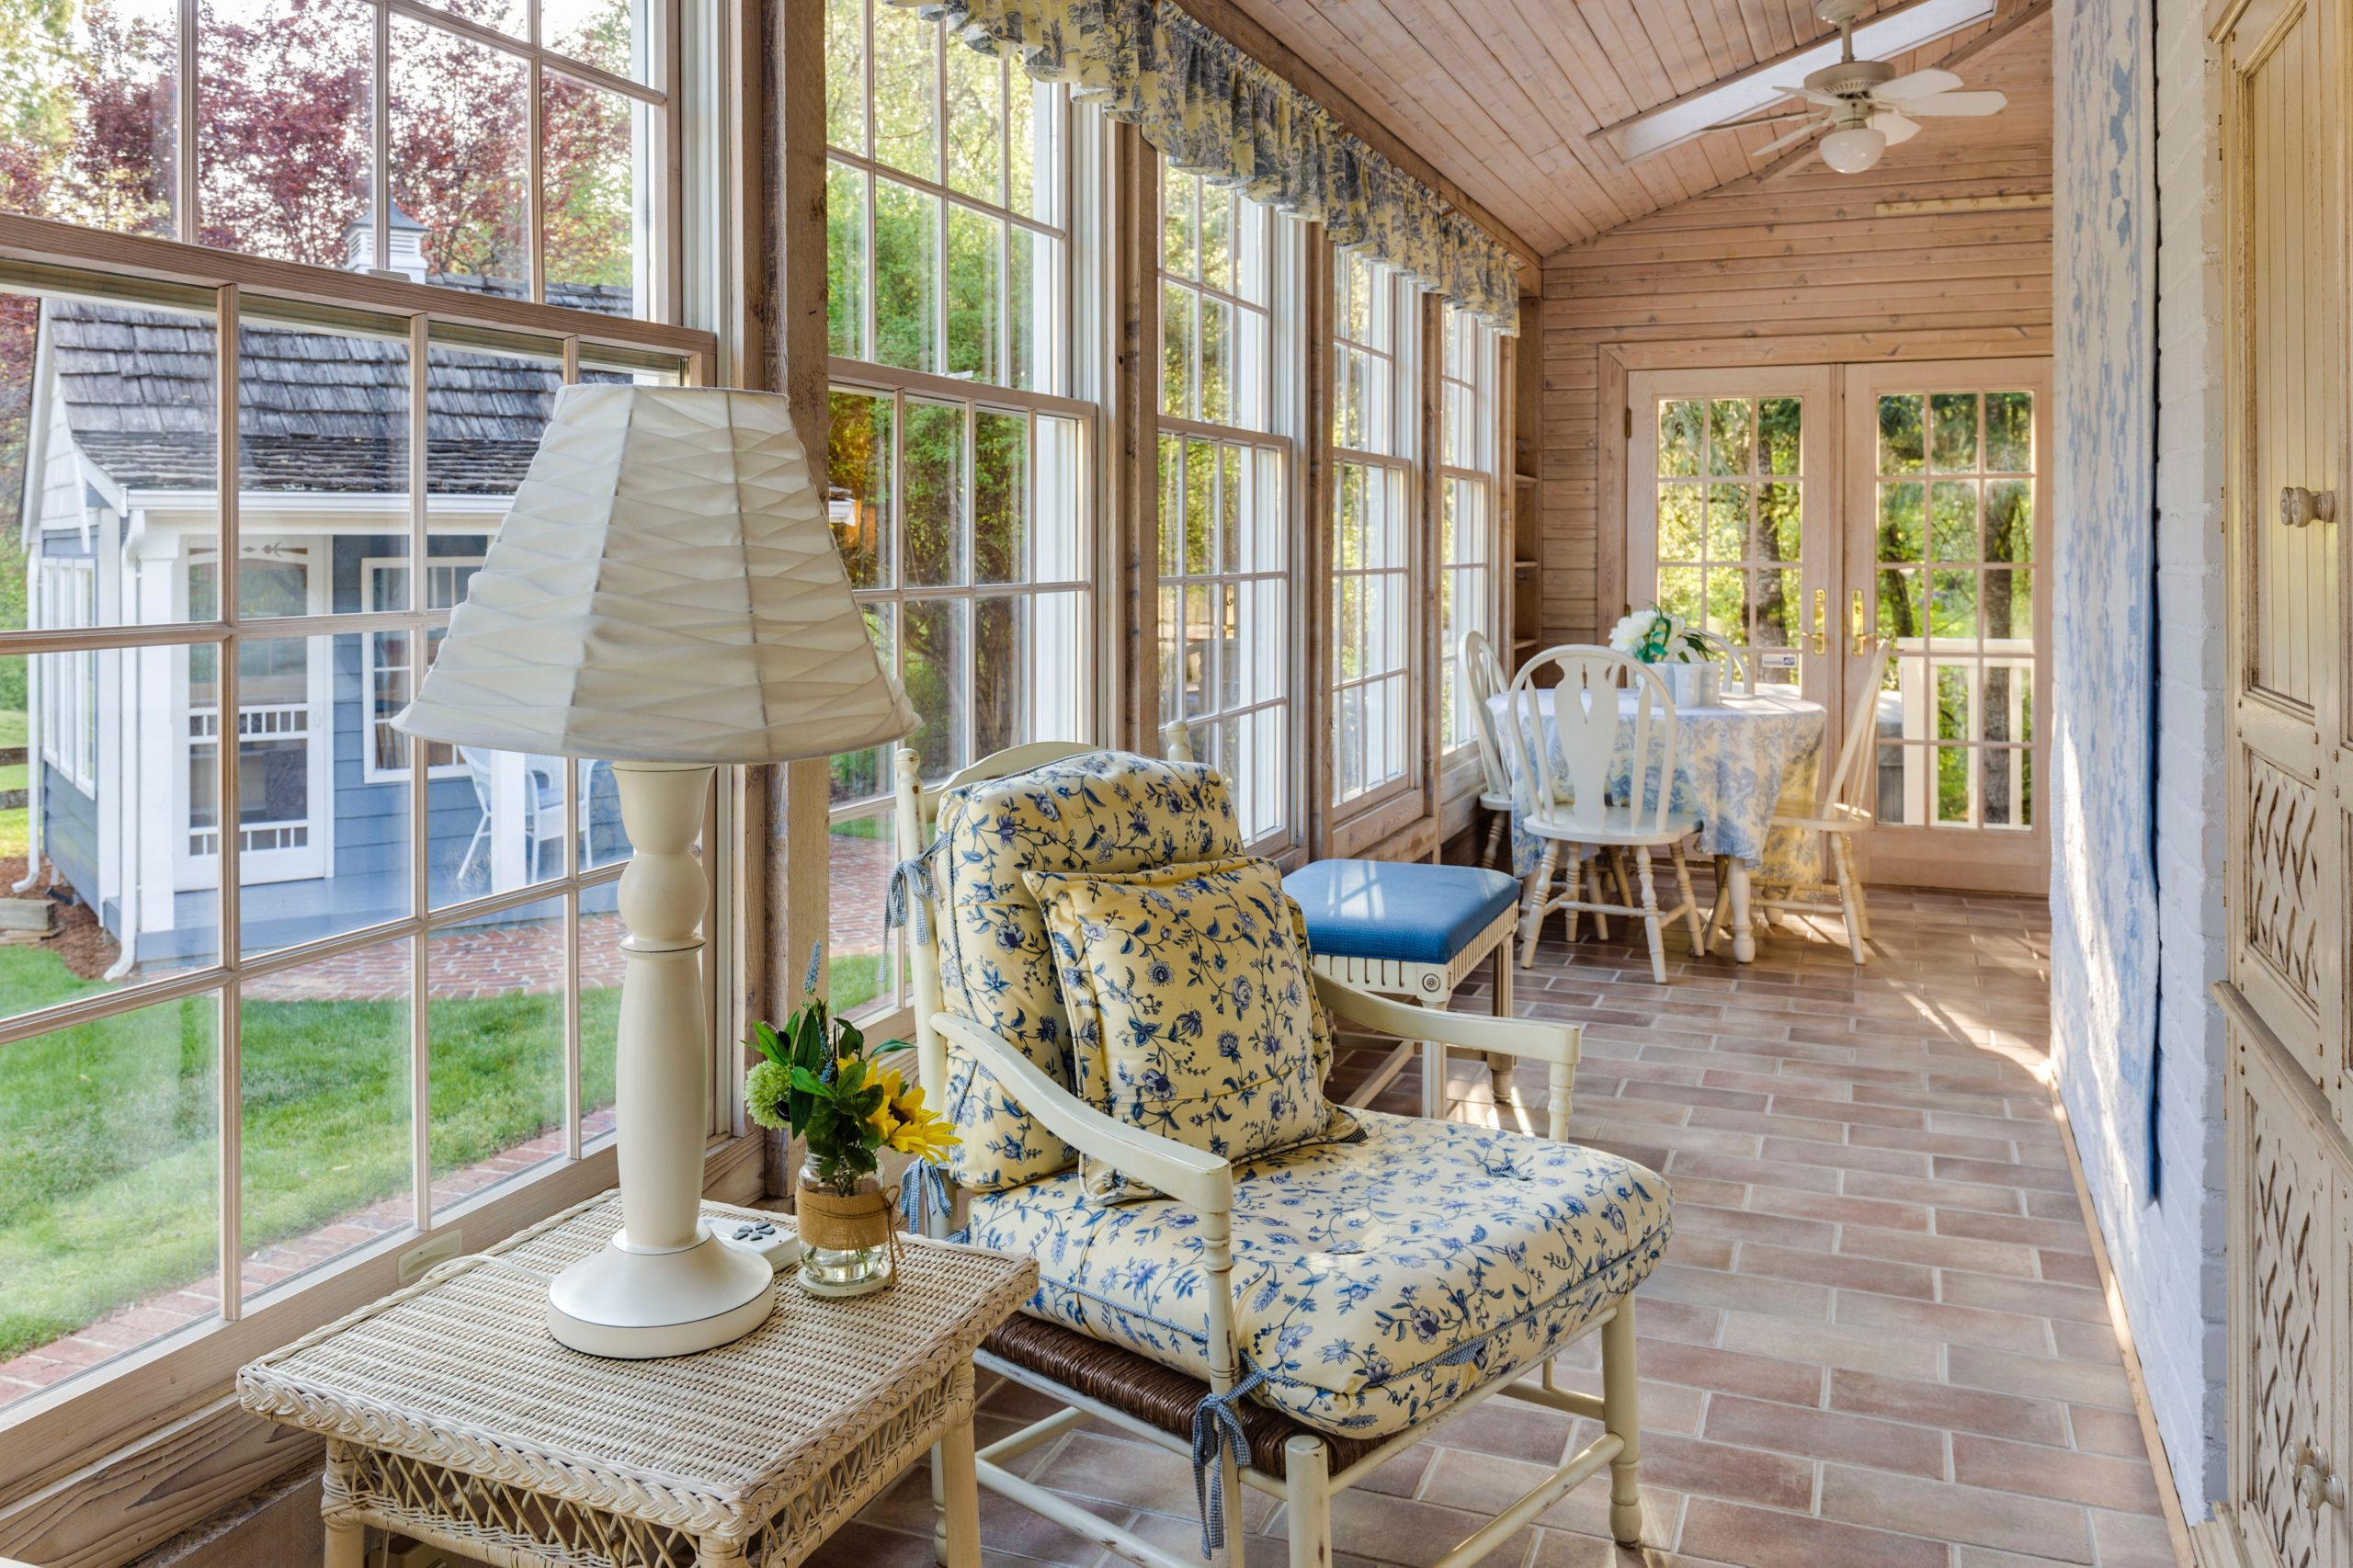 Why You Should Add a Sunroom or Deck to Your Home